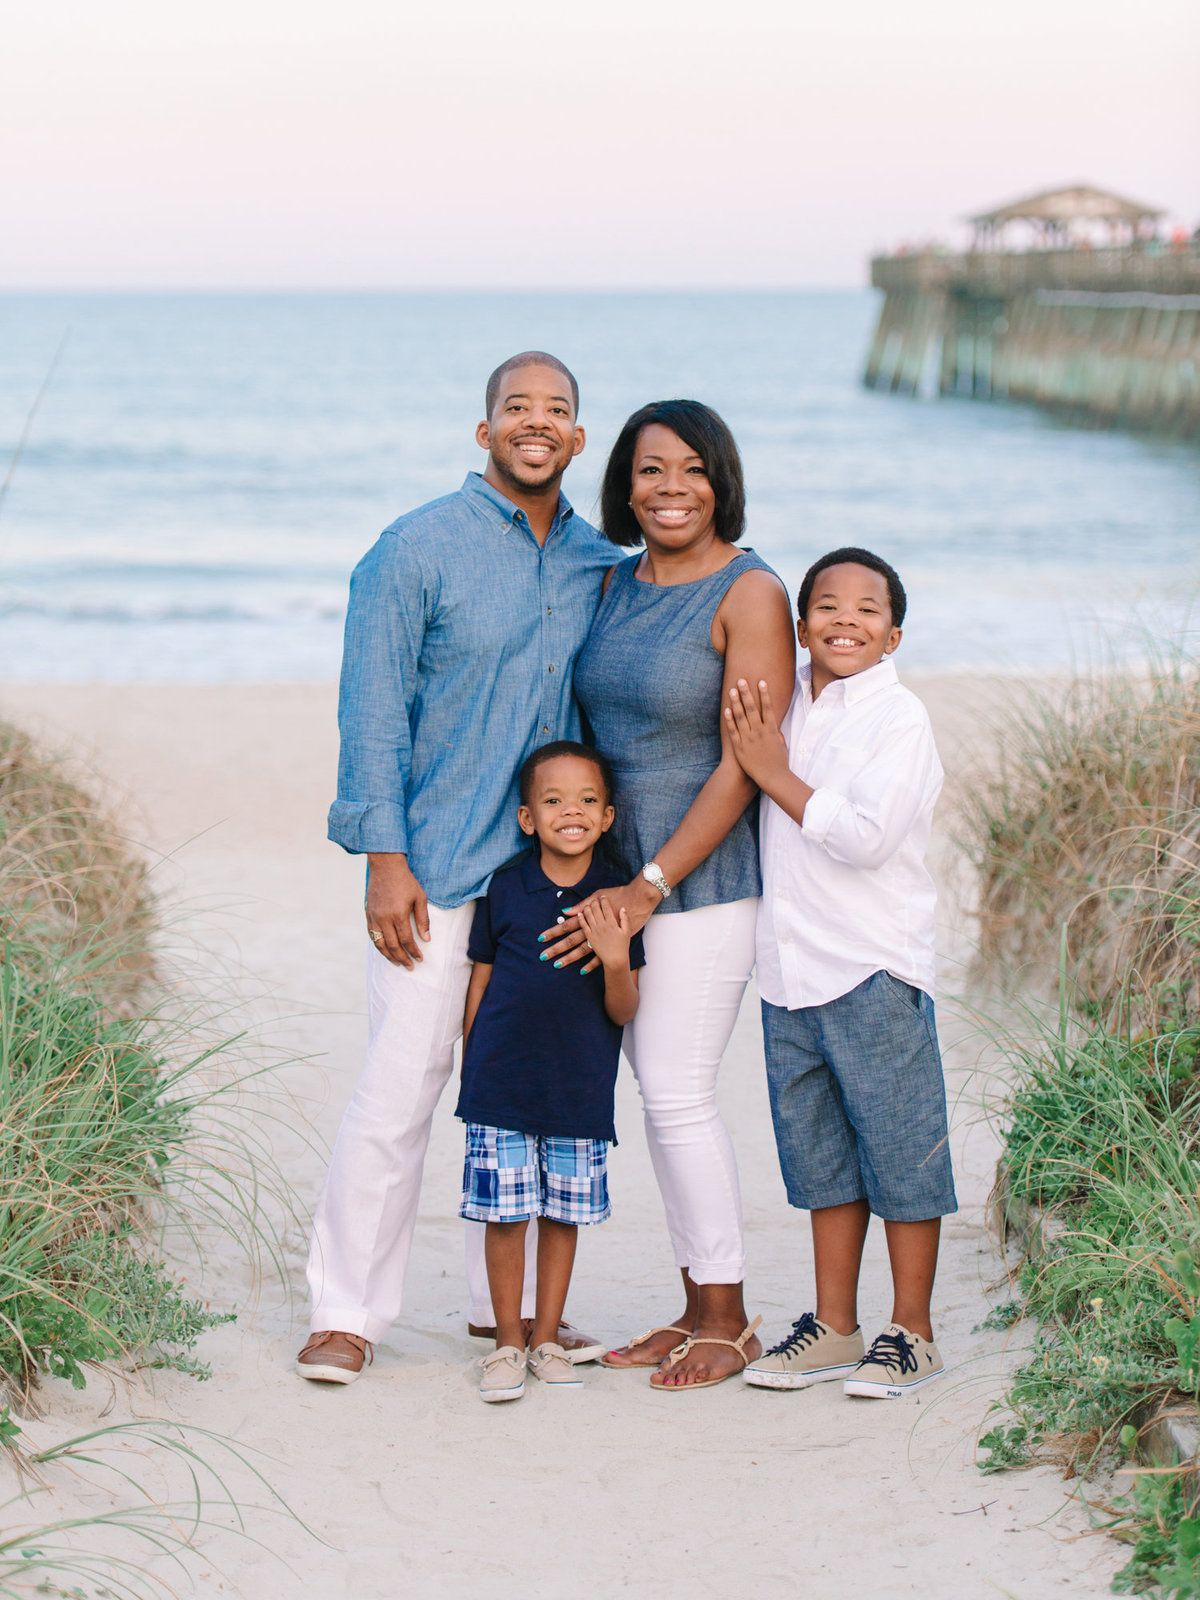 8 Most Beautiful Outfit Ideas For Family Beach Pictures By Top Myrtle Photographers